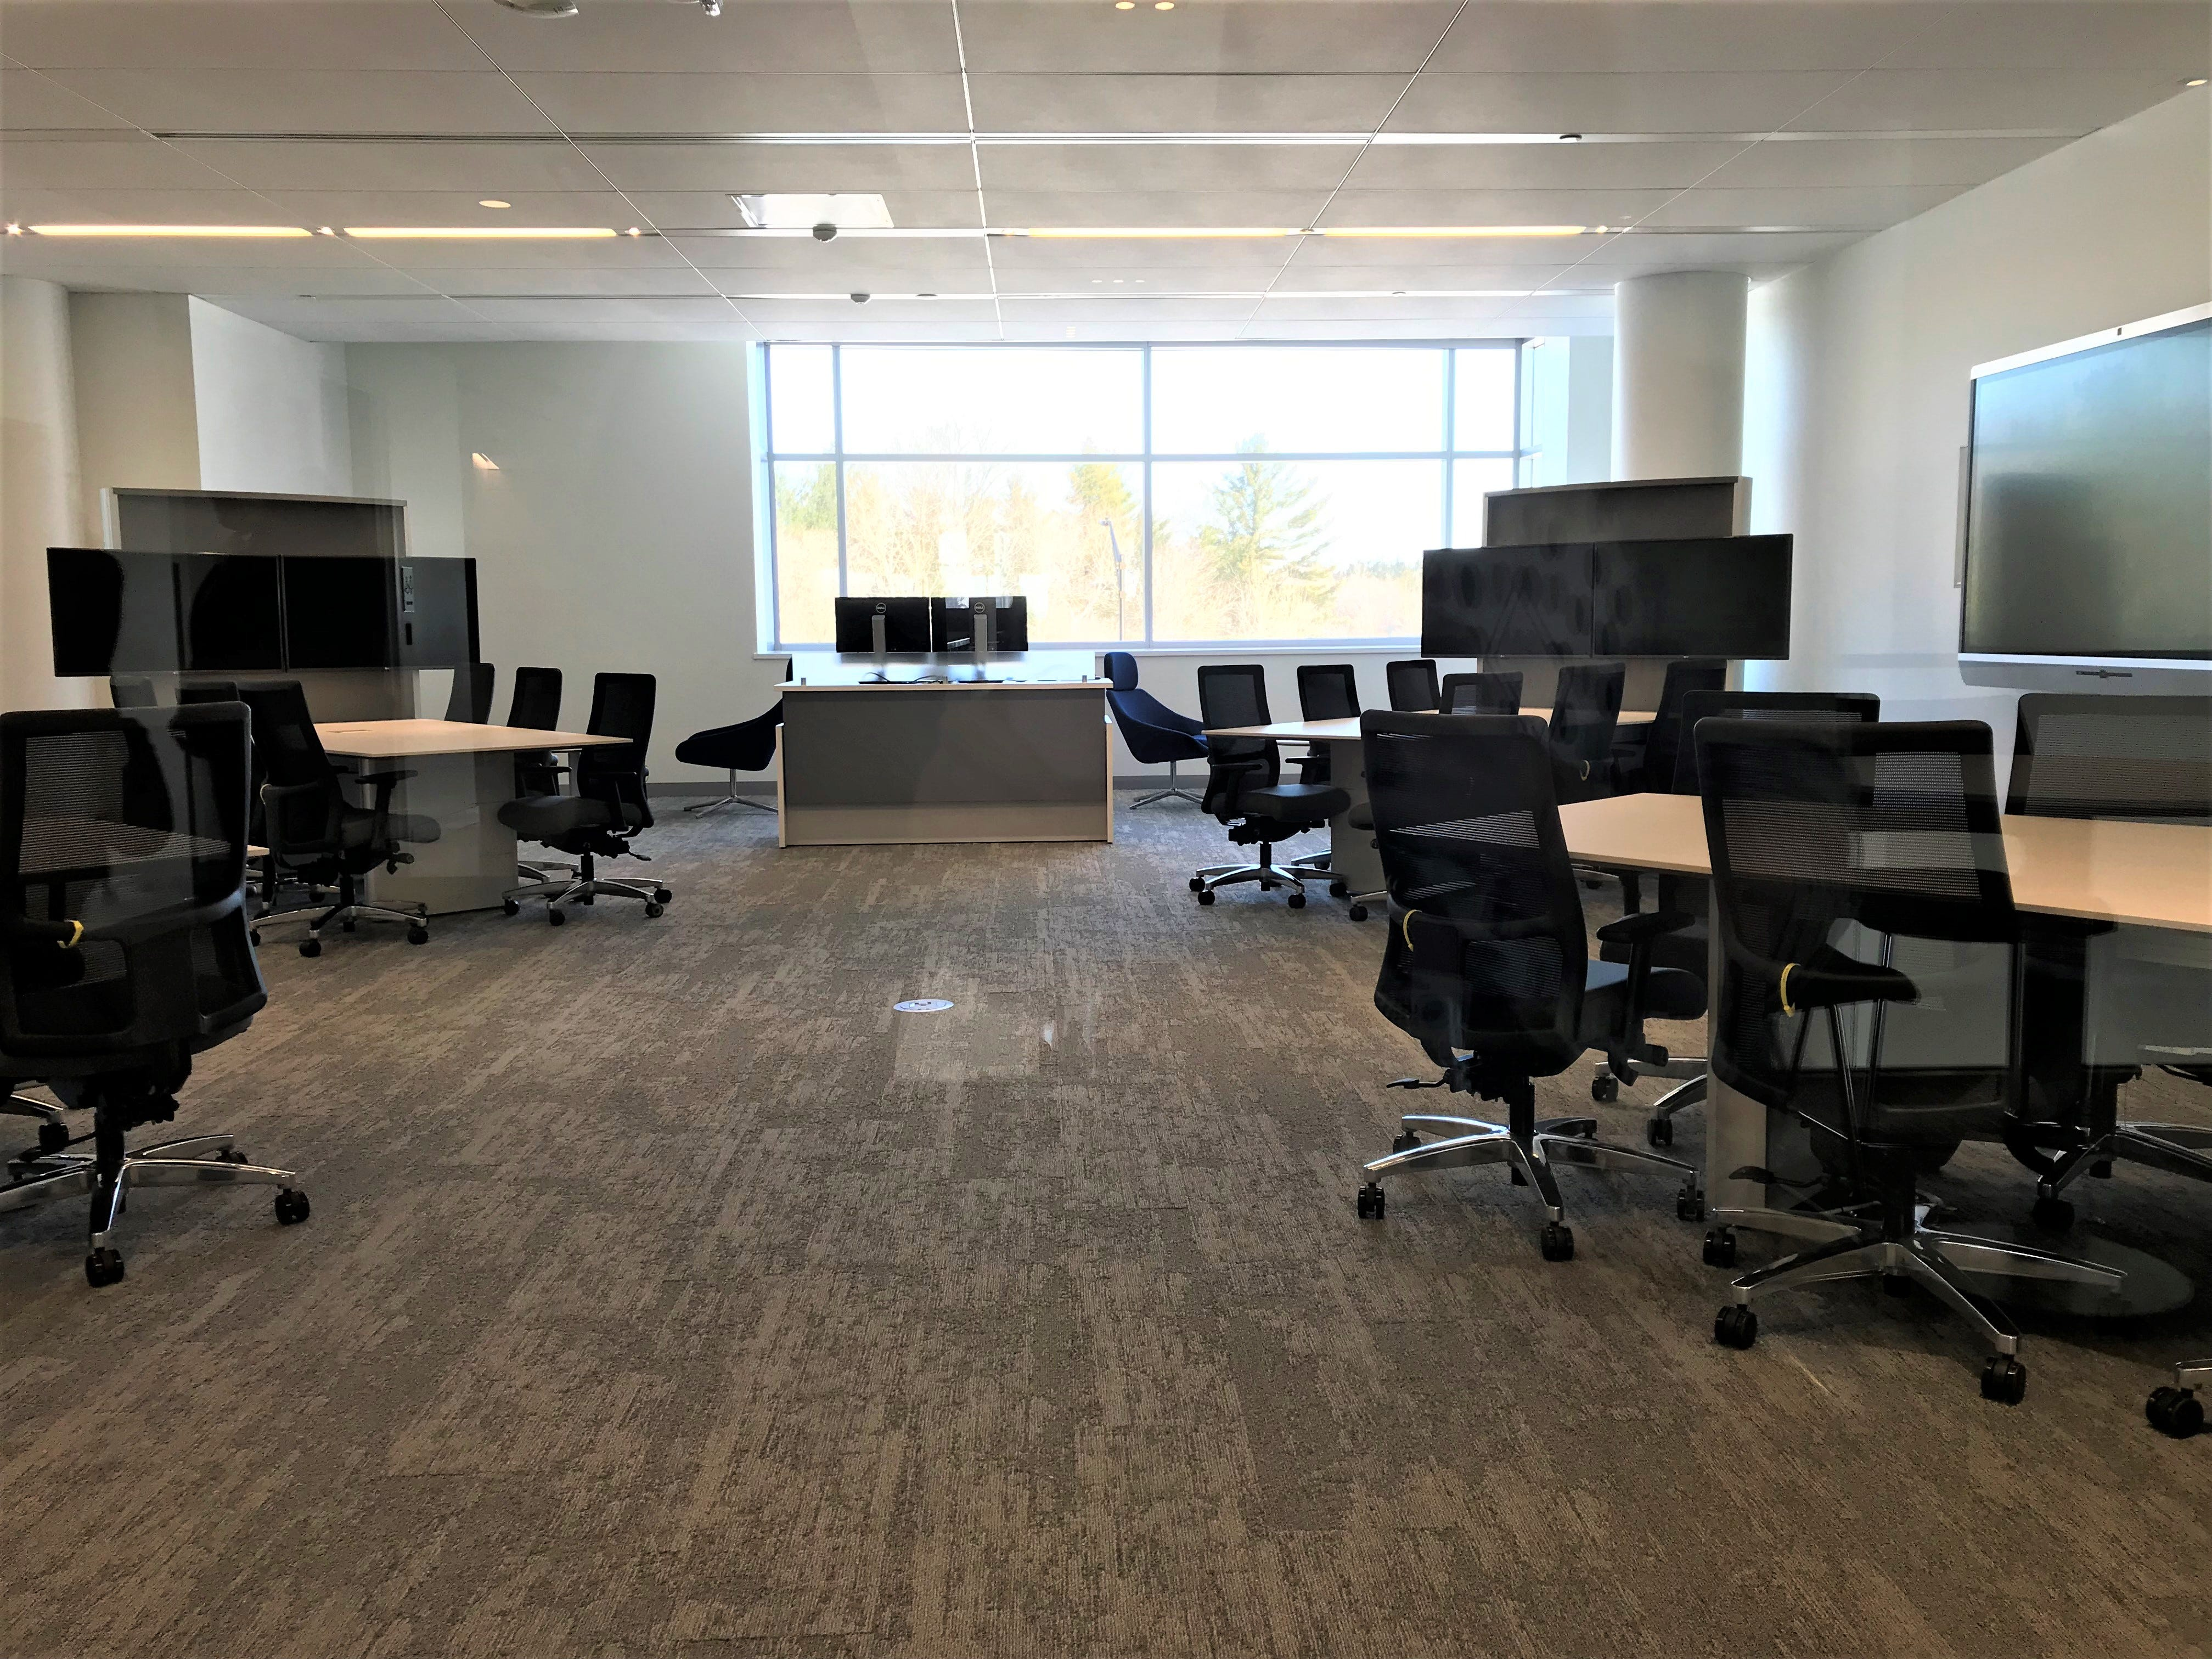 Shared work space in Sentry Insurance